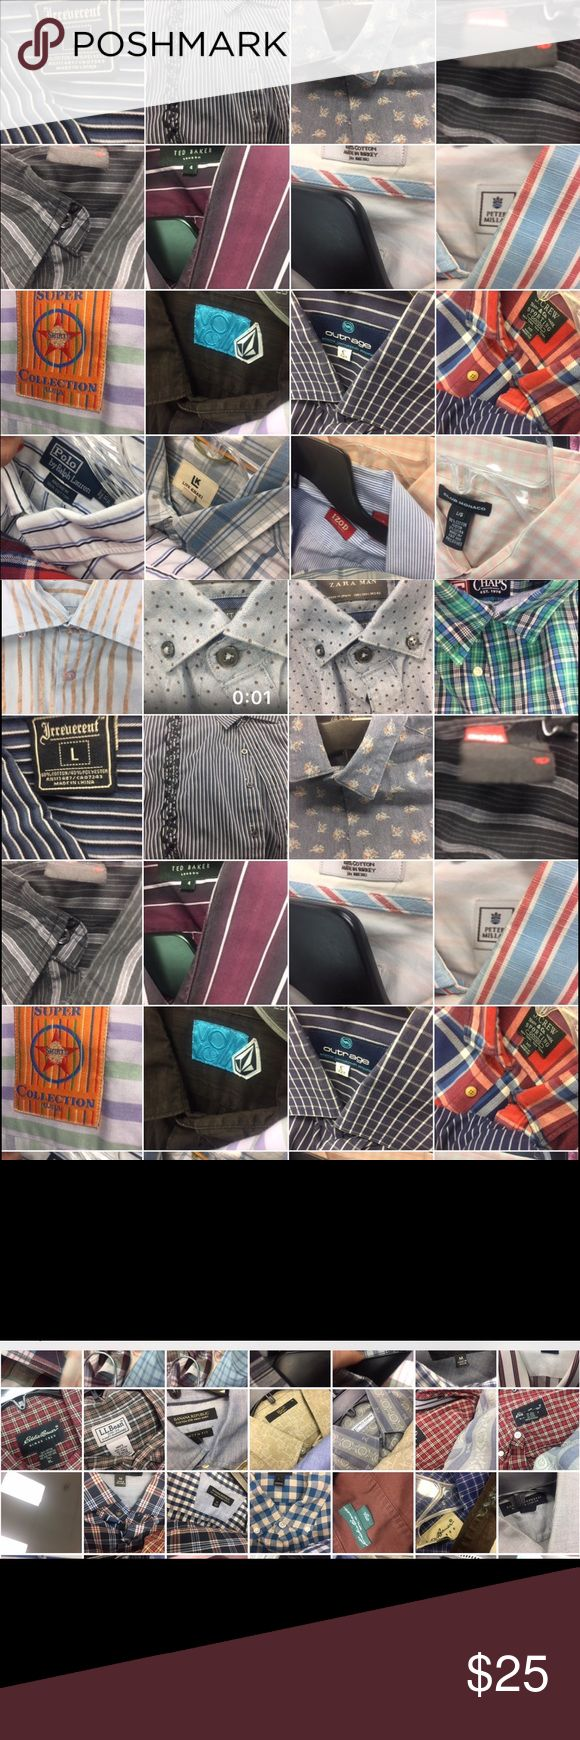 Hello my POSHER VIPS. A SNEAK 10%  preview ( men) Just some very universal fashion demands you put out there, Ted Baker, J. Crew, Banana Republic, Hugo Boss, Hollister, under armor , Patagonia, LL bean, Geoffrey B., Volcom, Nike, Adidas, Converse, u name it. ARMANI, Prada, et al were sent for cleaning just for you! YOUR TASTE  Other